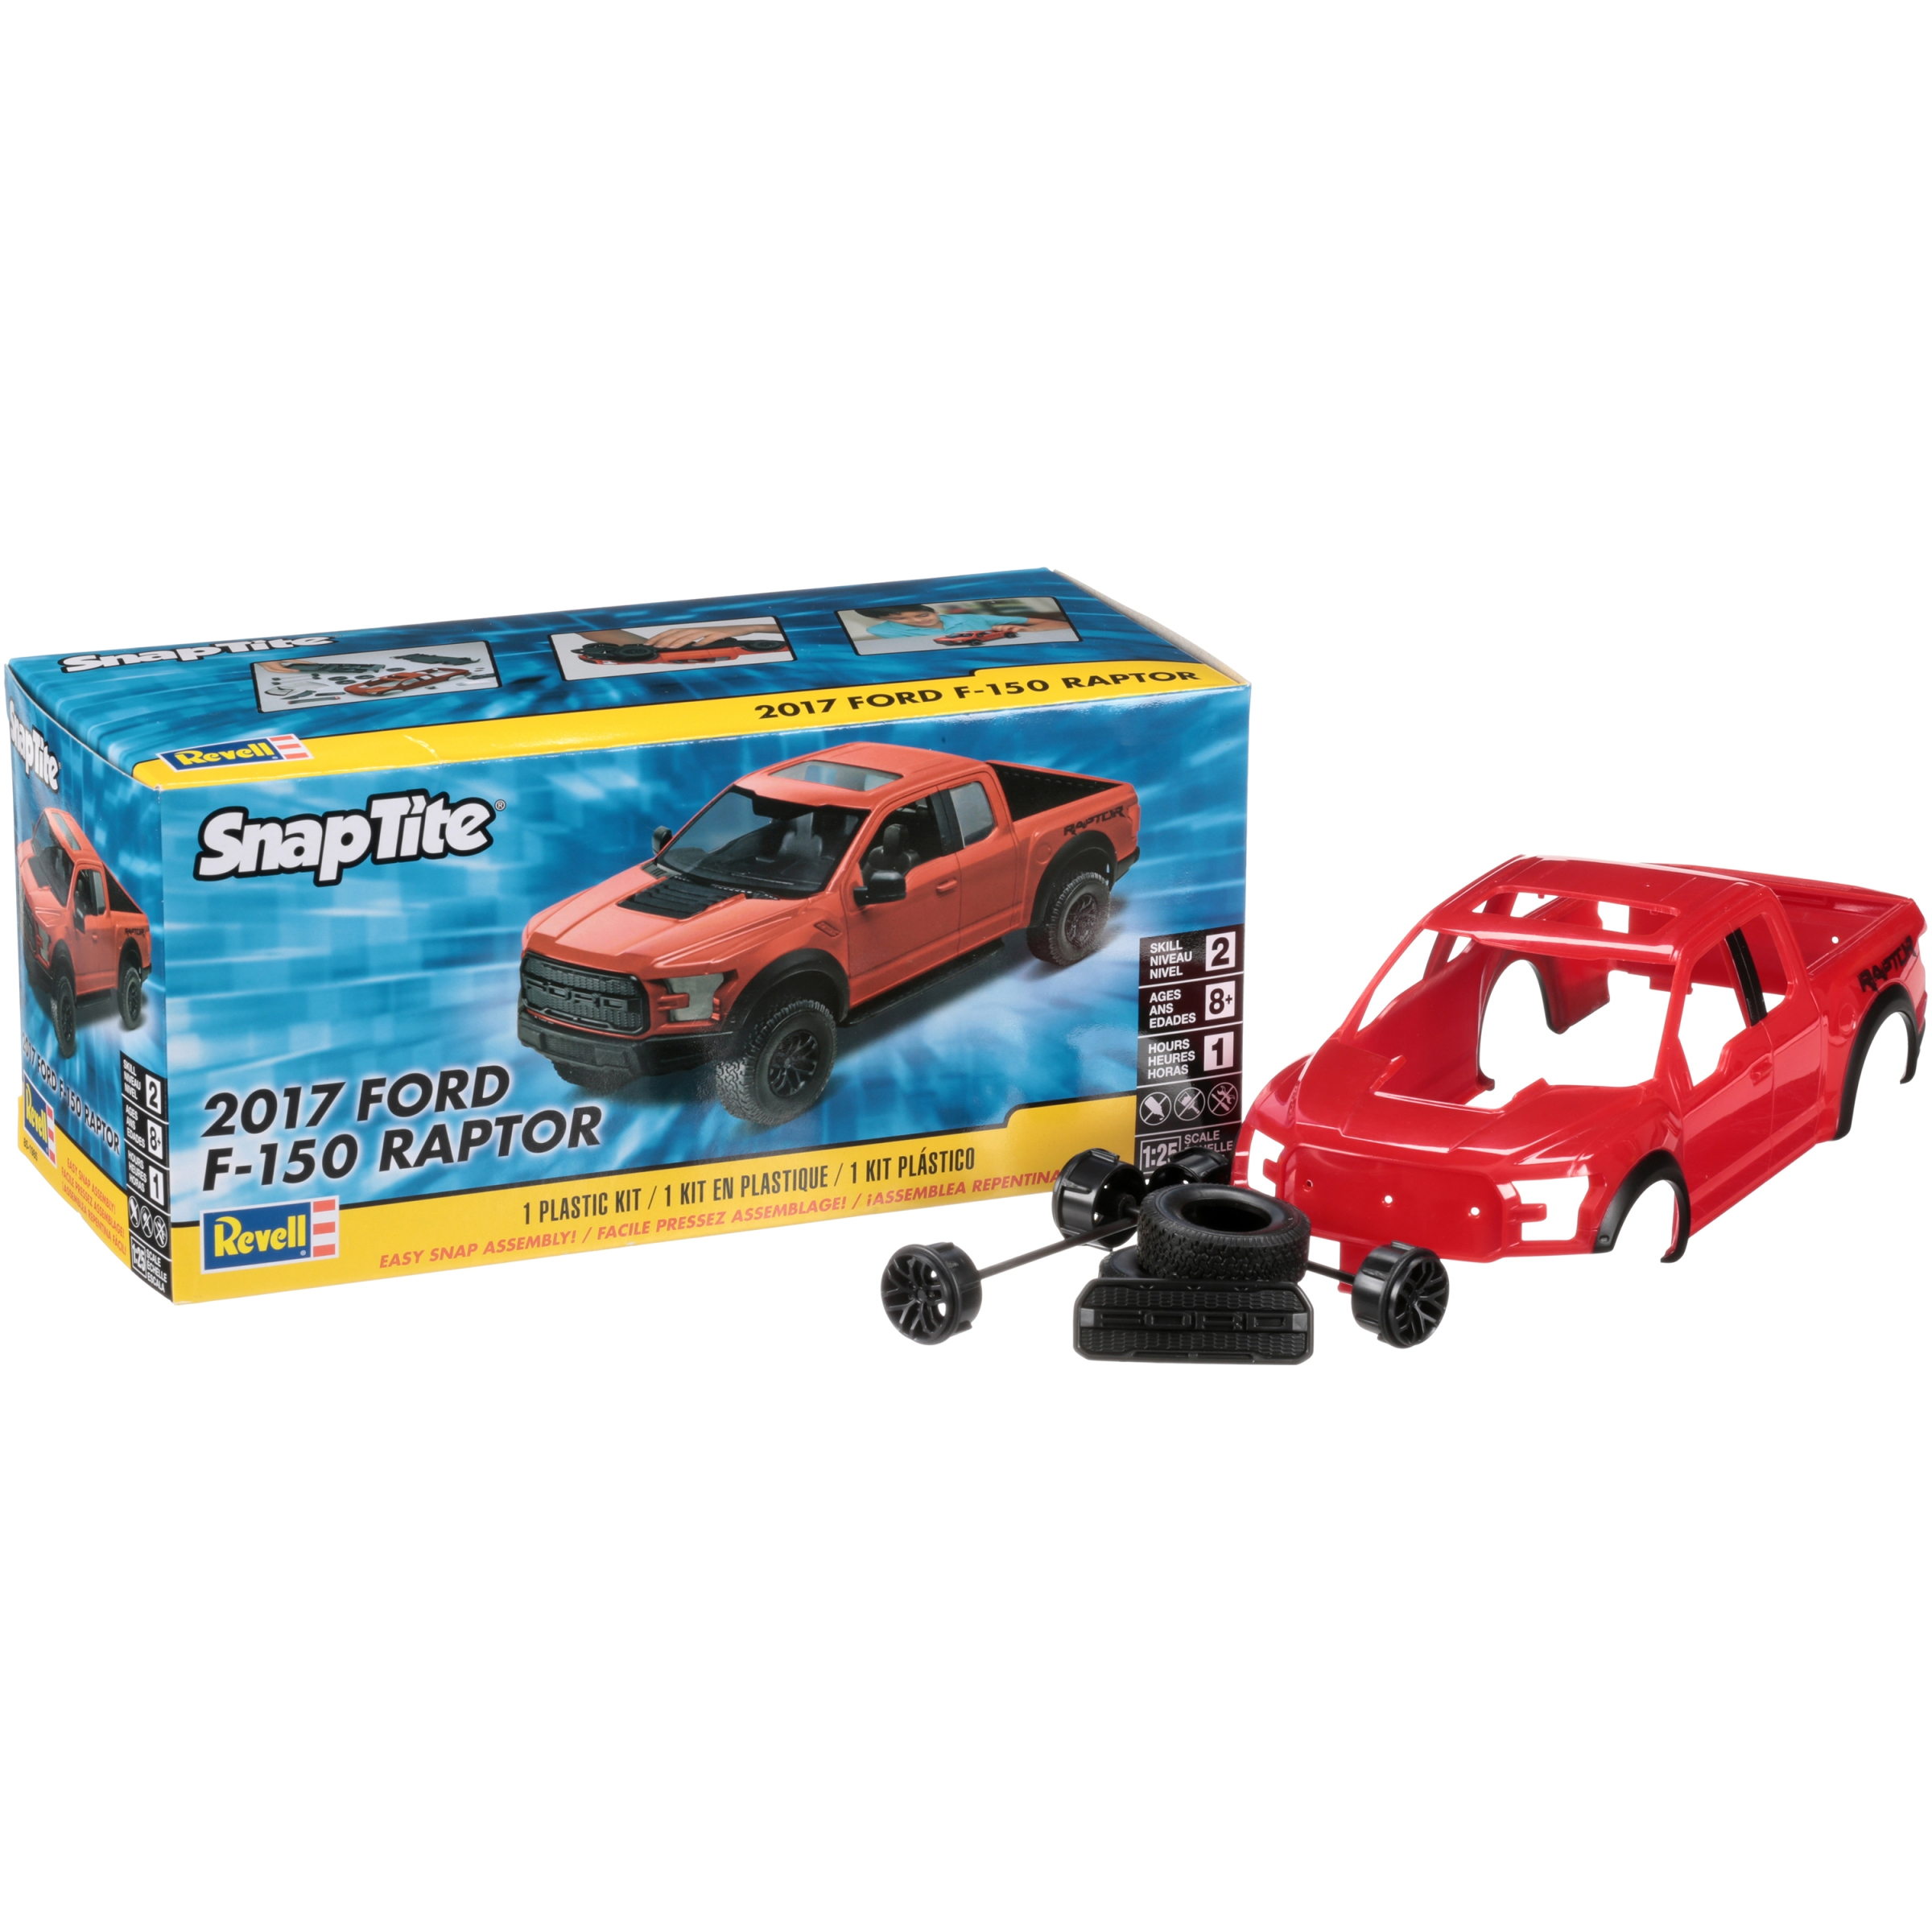 Revell Snaptite  Ford F  Raptor Plastic Model Truck Kit